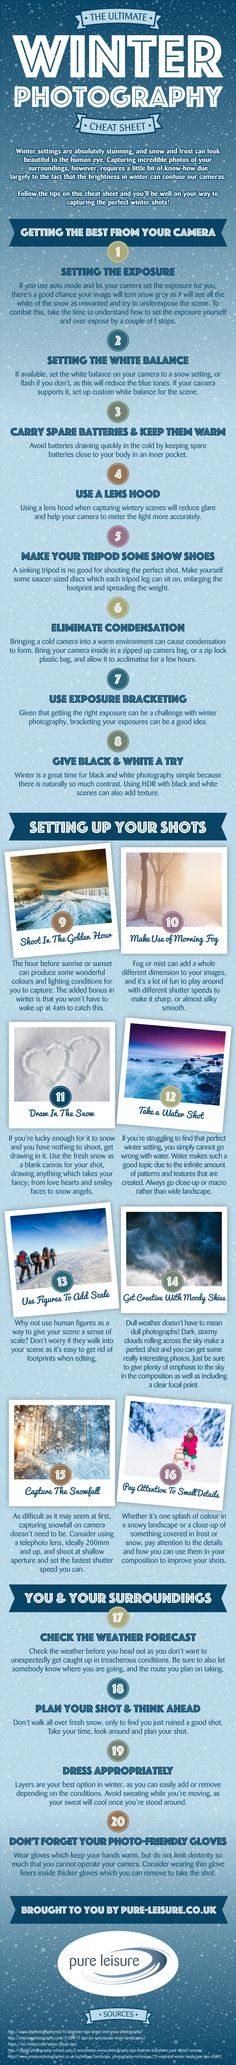 Check out 'The Ultimate Winter Photography Cheat Sheet' to get top tips for taking seasonal shots this winter!